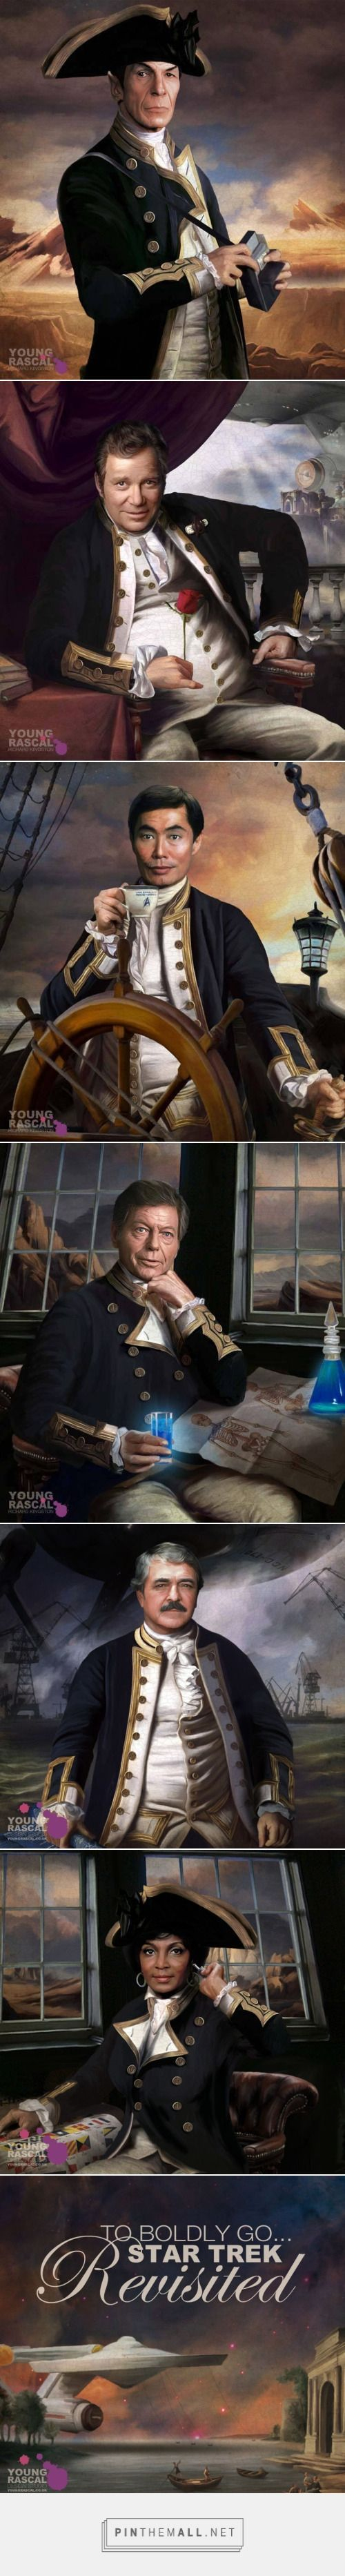 The Original Star Trek Crew In Old Naval Uniforms by Young Rascal Science Officer Spock, Commanding Officer James T Kirk, Helmsman Hikaru Sulu and, Chief Medical Officer Leonard McCoy, Chief Engineer Montgomery Scott, and Communications Officer Nyota Uhura - created via https://pinthemall.net